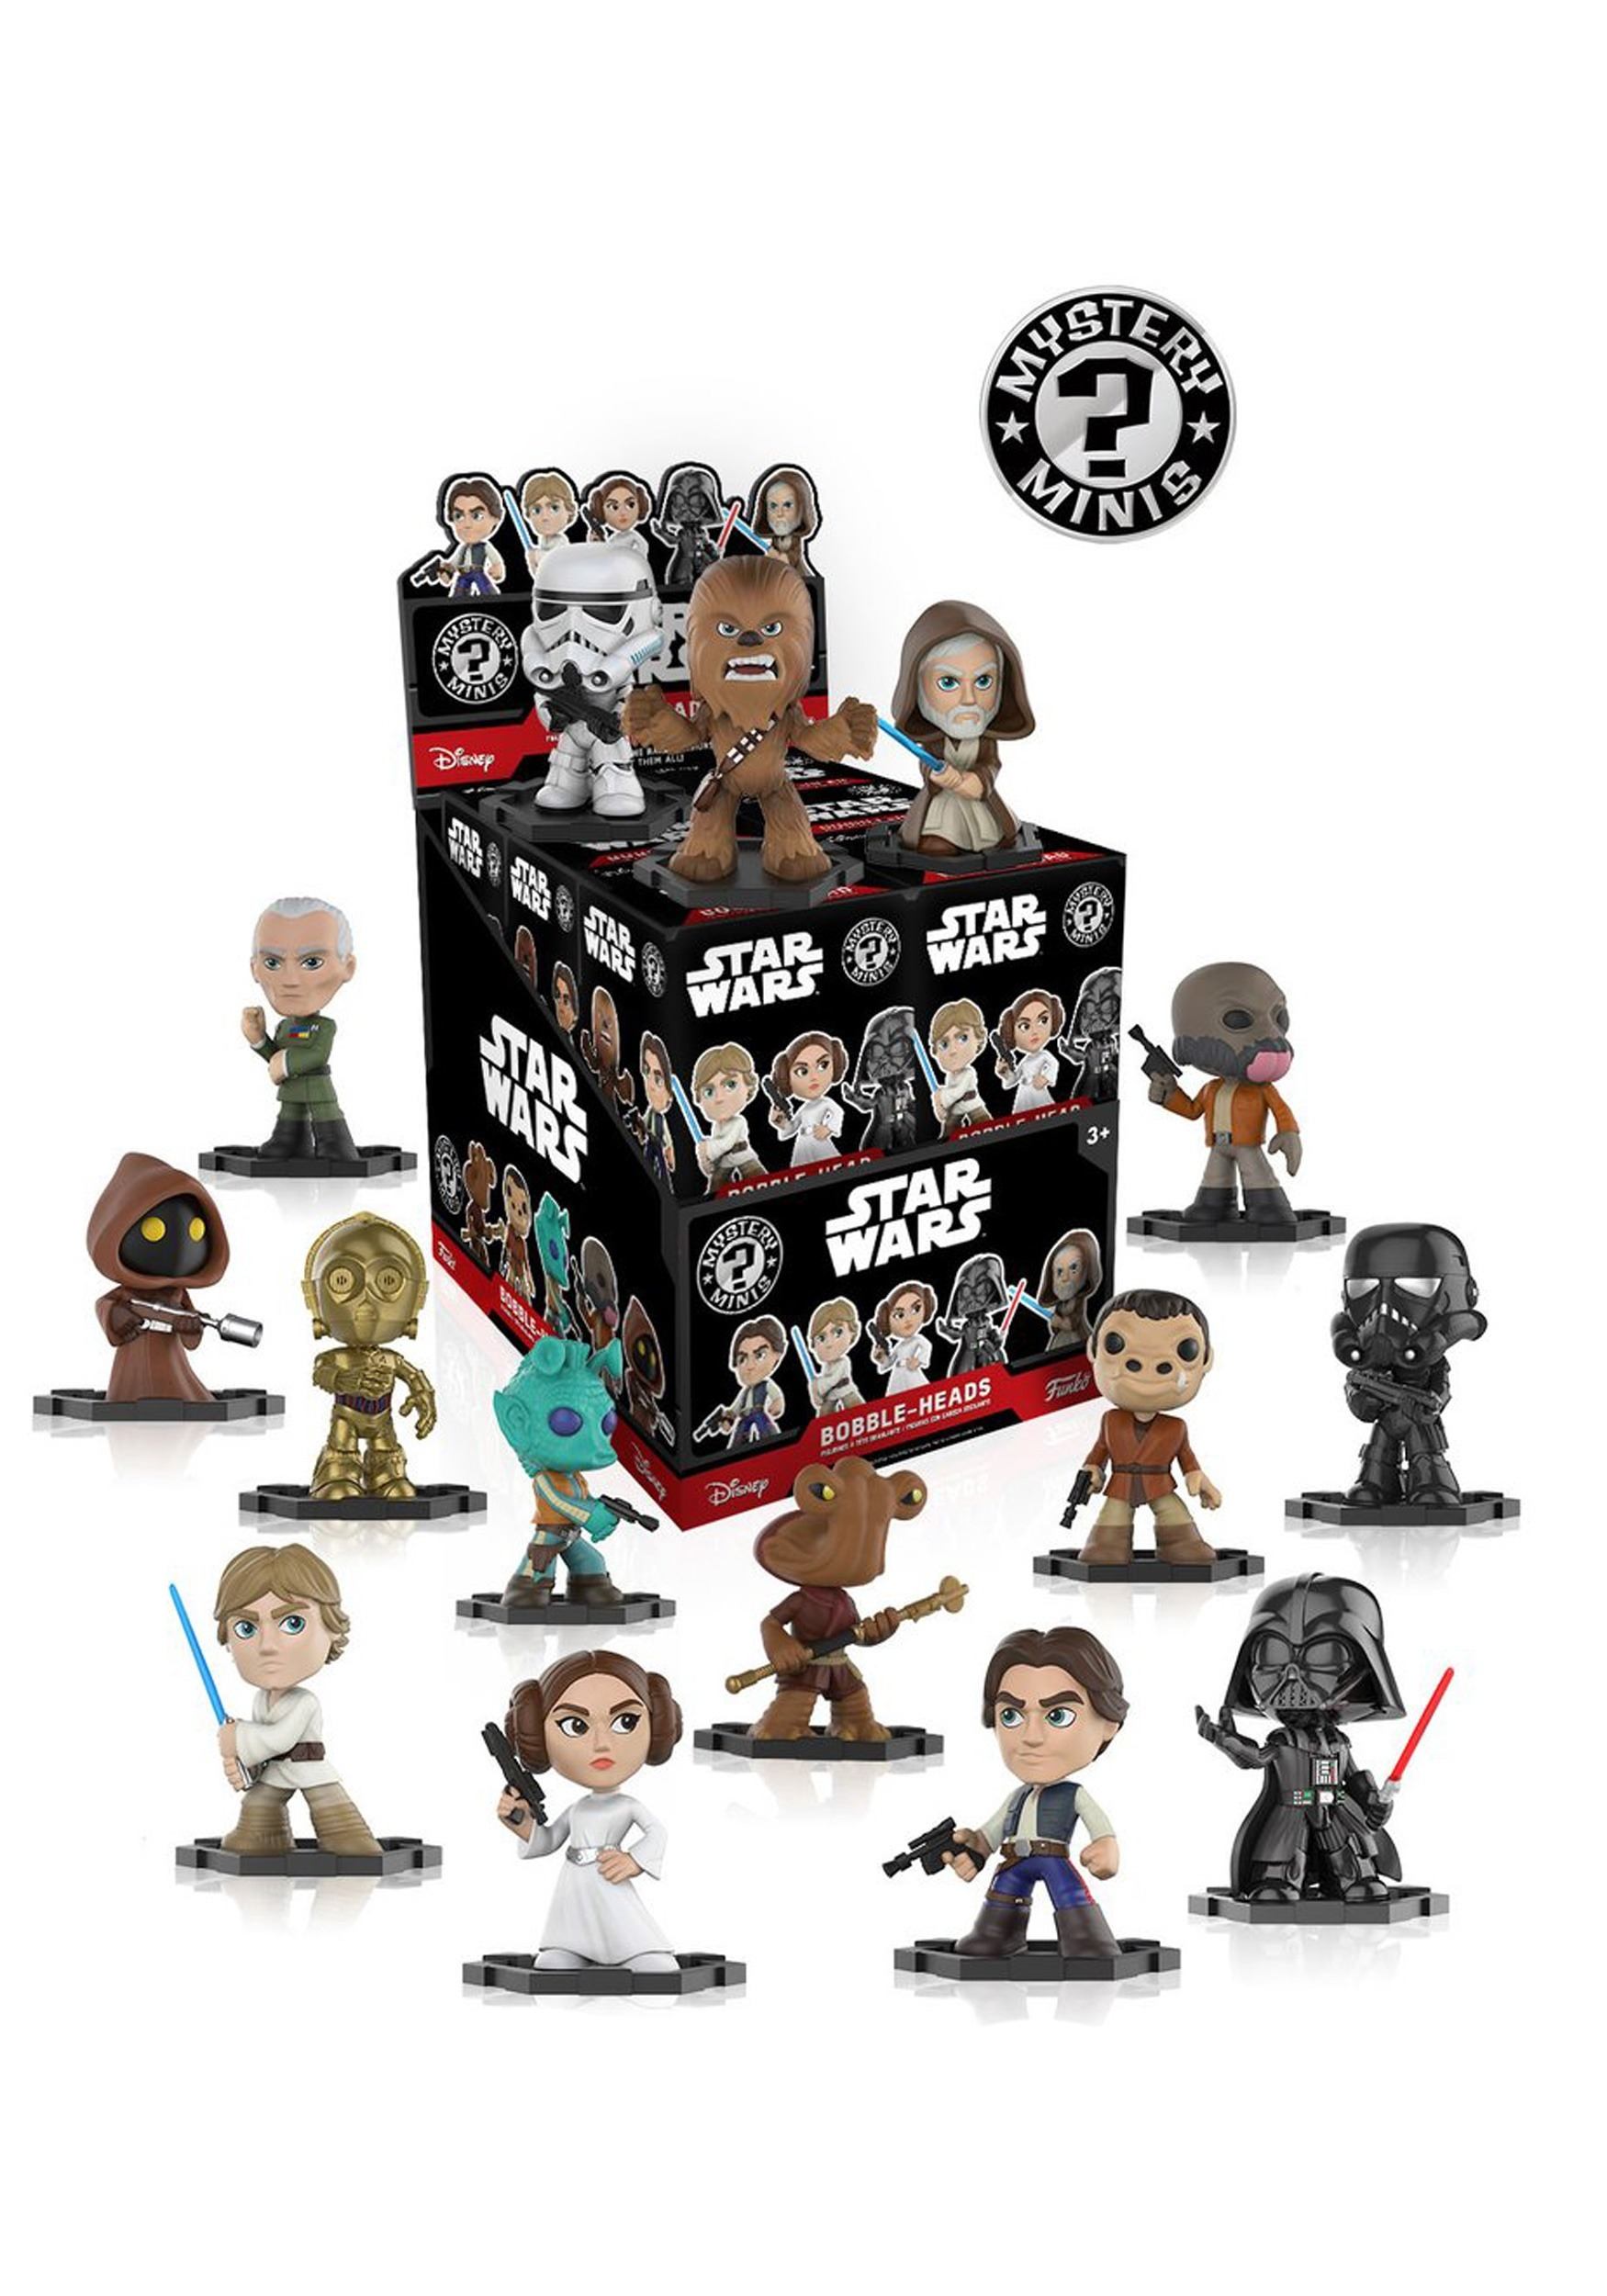 Mystery Mini Star Wars 40th Anniversary Bobblehead